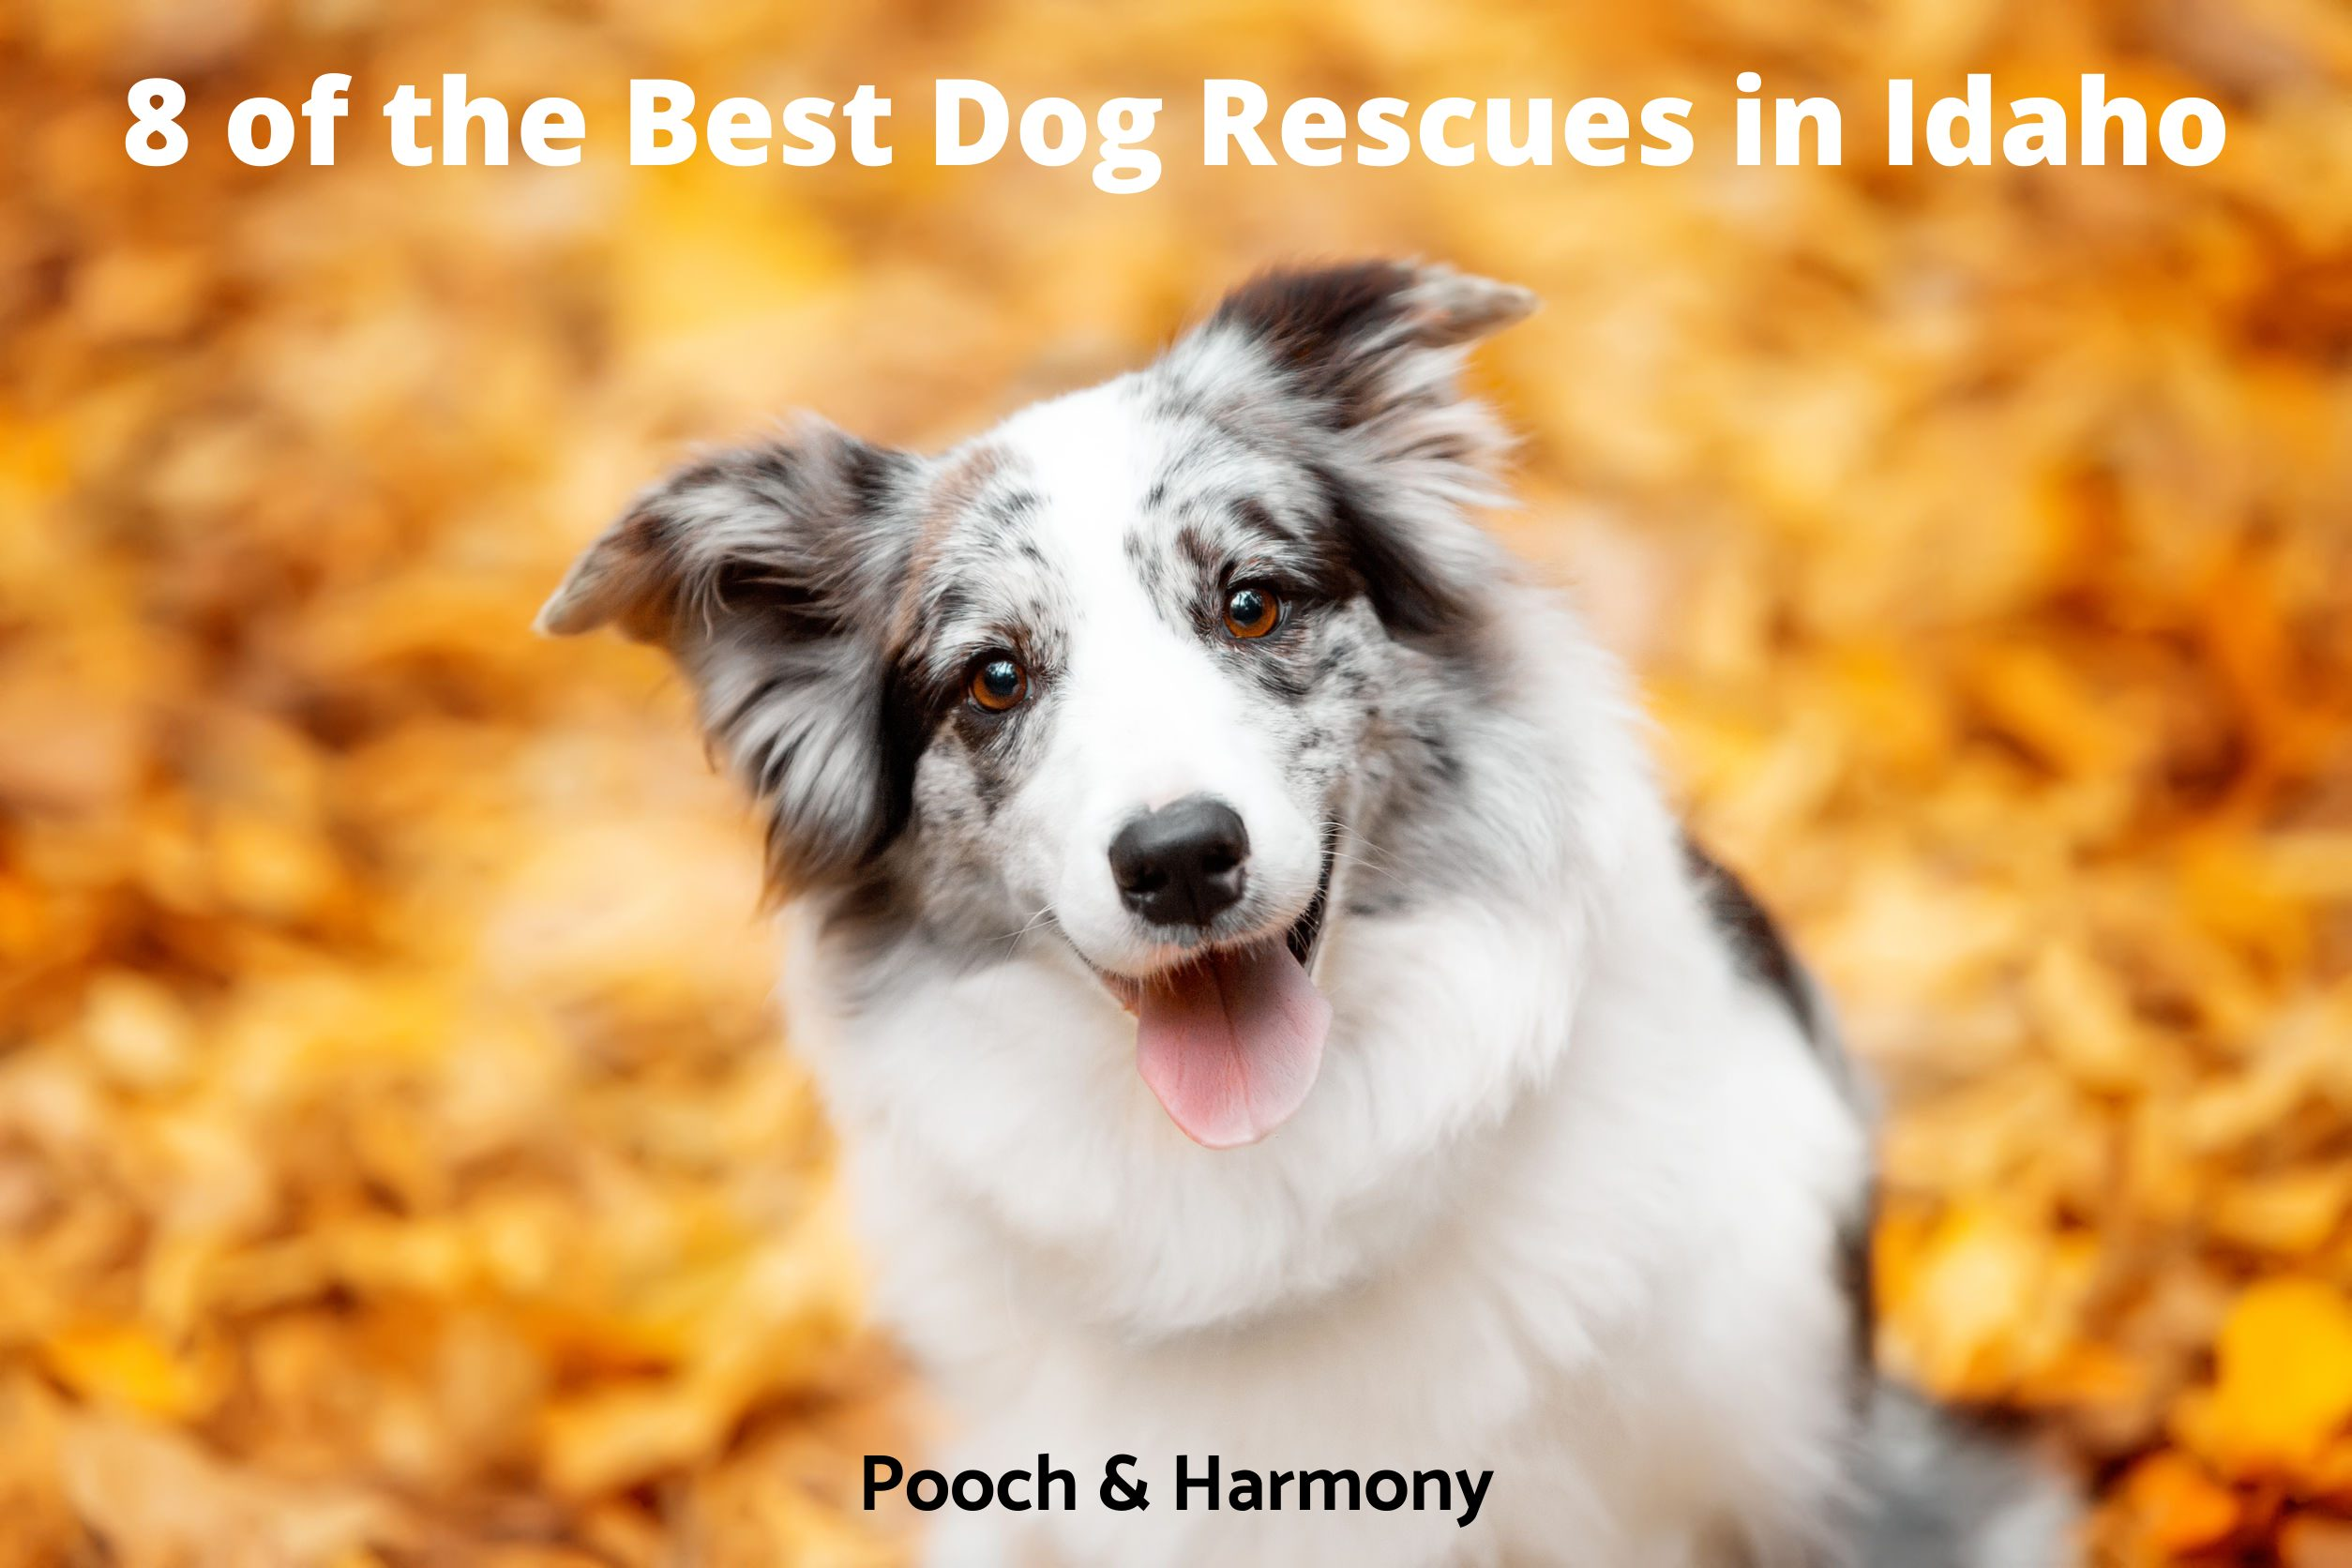 Best Dog Rescues in Idaho